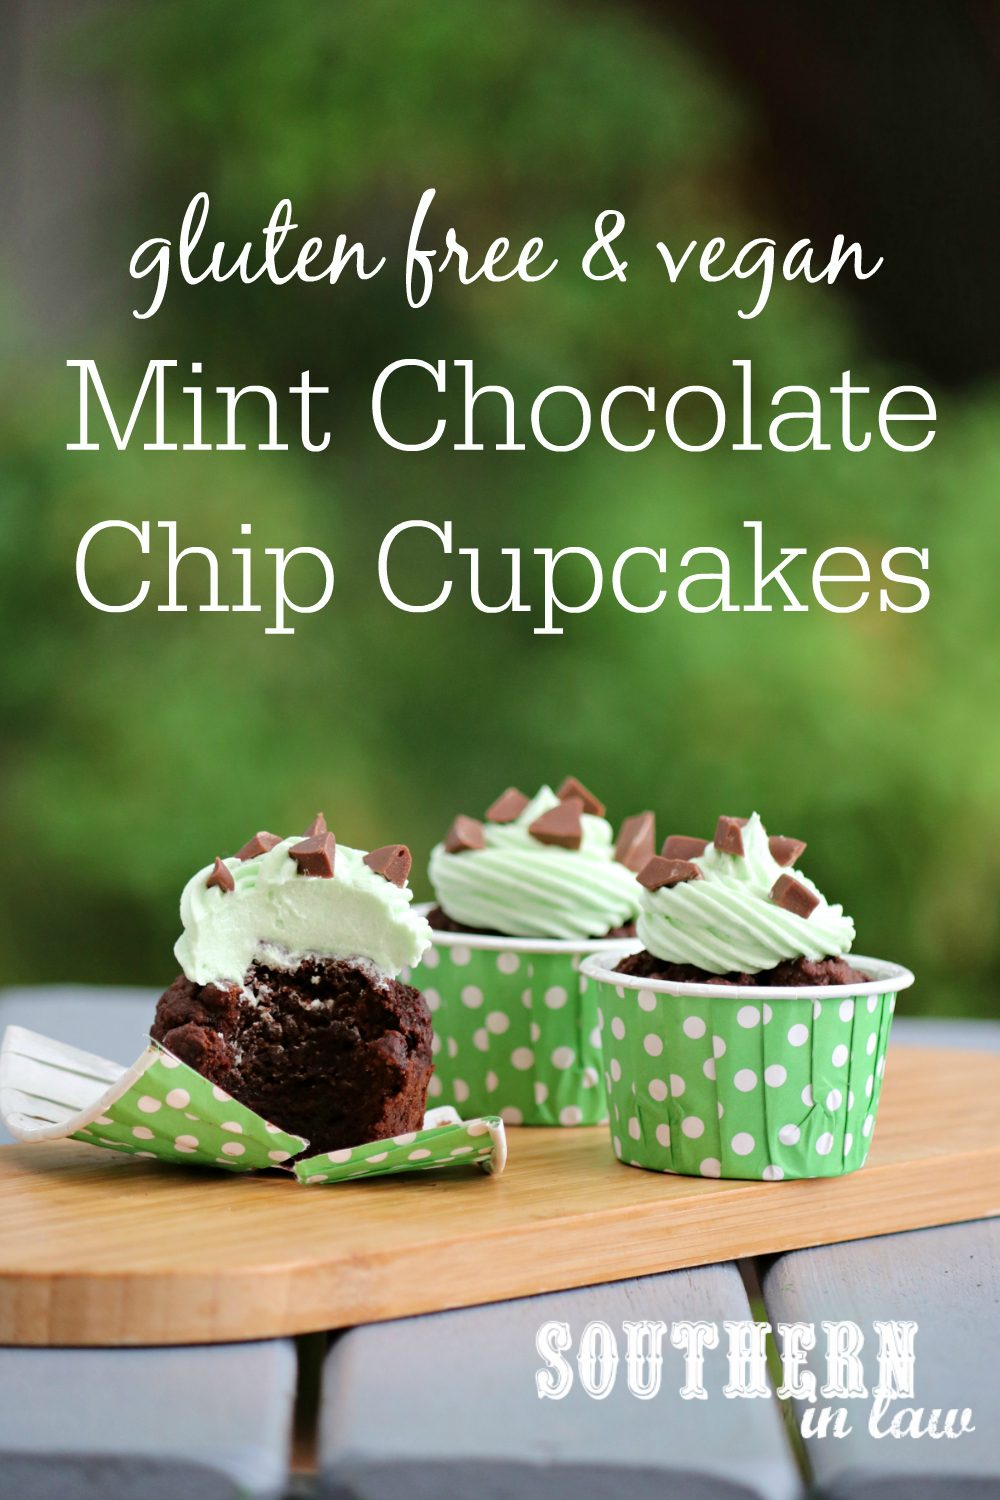 Southern In Law Recipe Mint Chocolate Chip Cupcakes Gluten Free